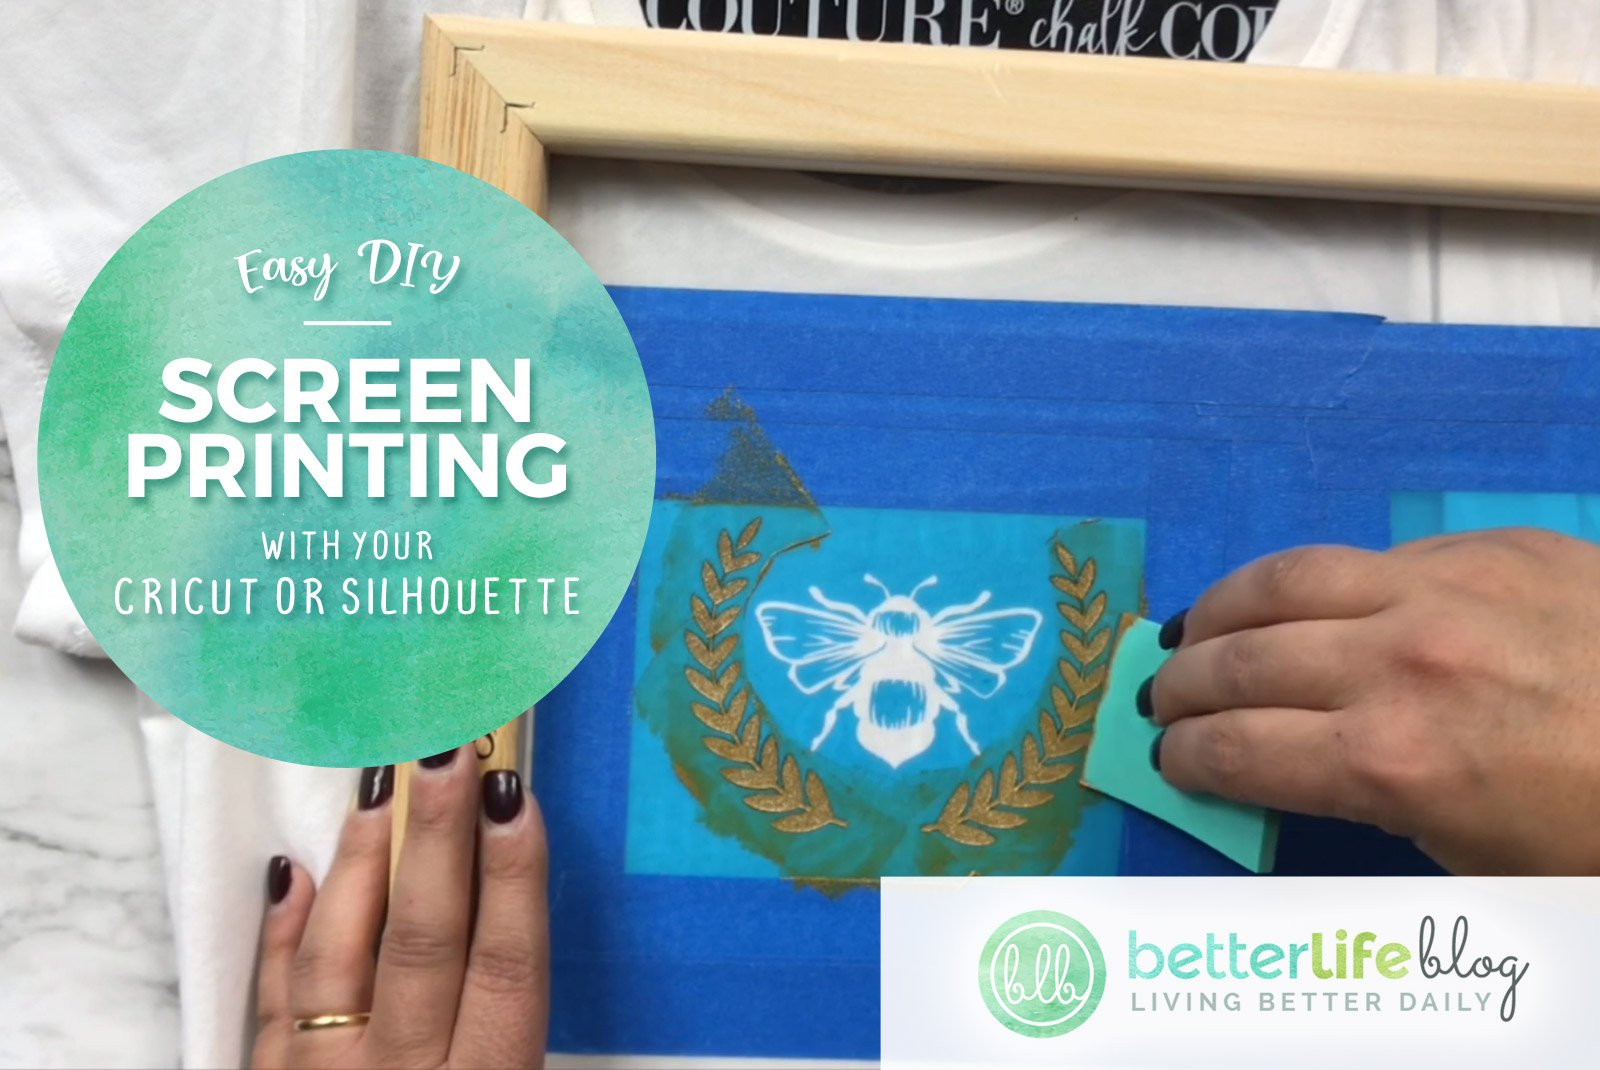 Easy Diy Screen Printing With Cricut Or Silhouette Cameo Better Life Blog